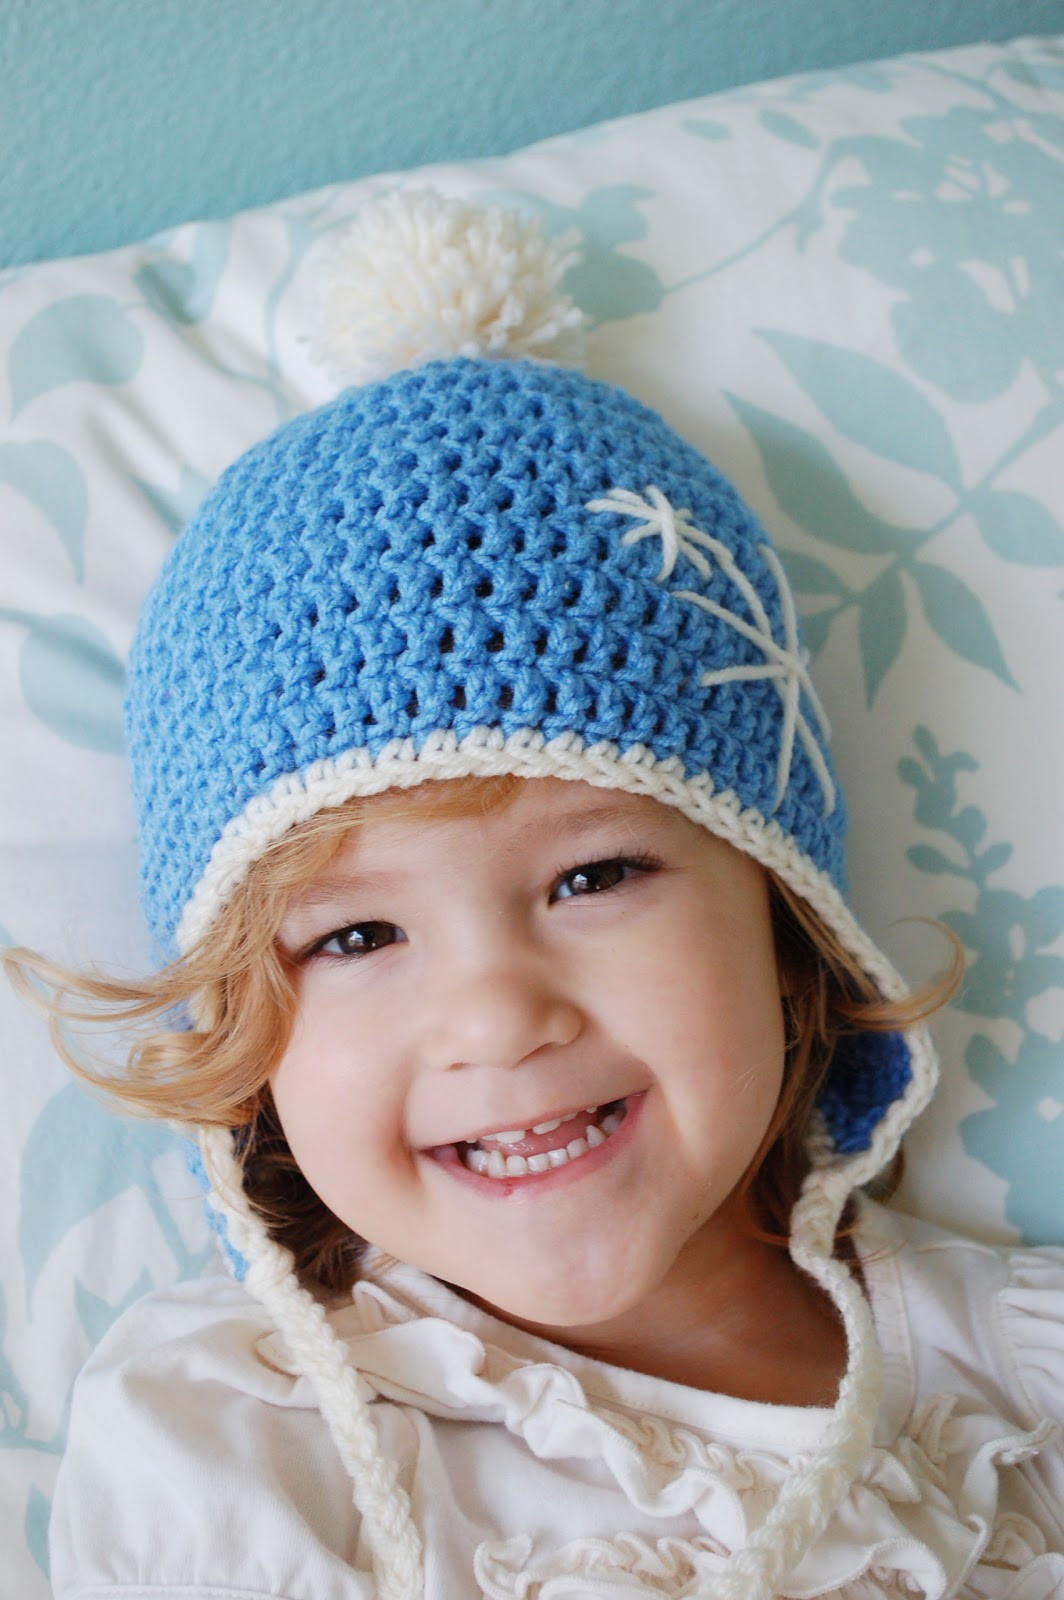 Crochet Hat with Ear Flaps Elegant Free Crochet Patterns for Baby Hats with Ear Flaps Of Delightful 50 Pictures Crochet Hat with Ear Flaps